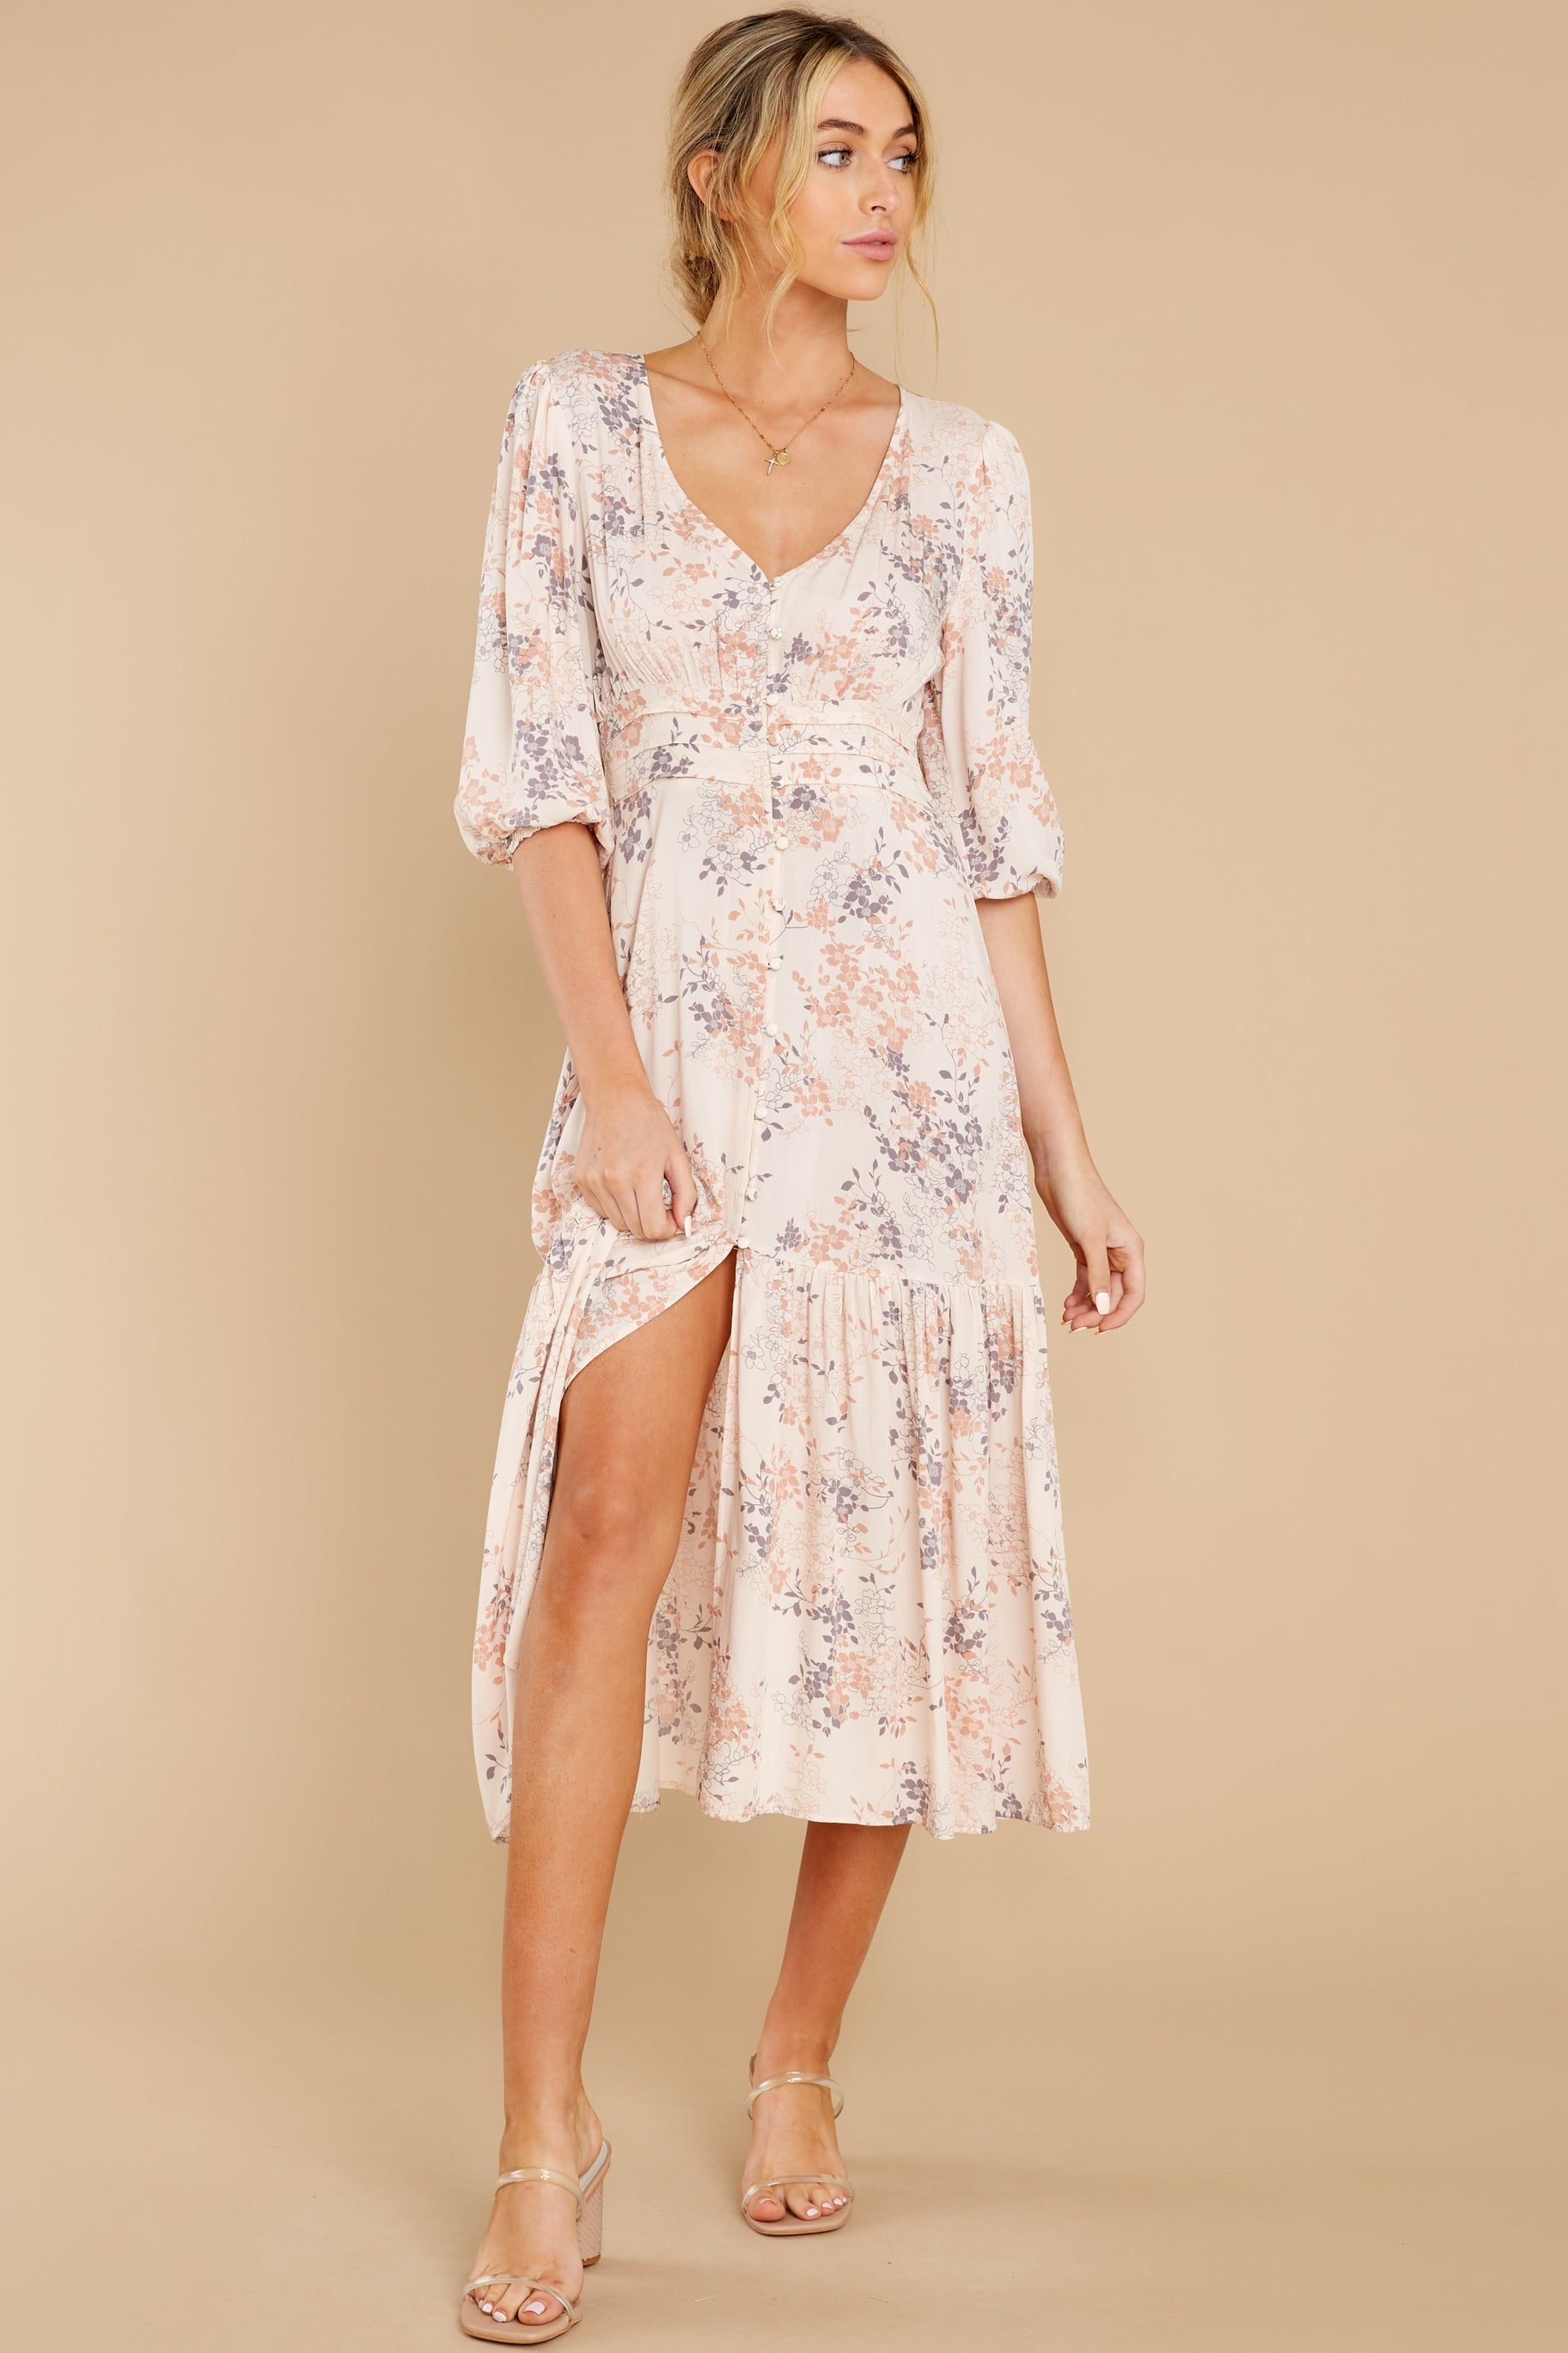 5 Love You More Blush Floral Print Maxi Dress at reddress.com